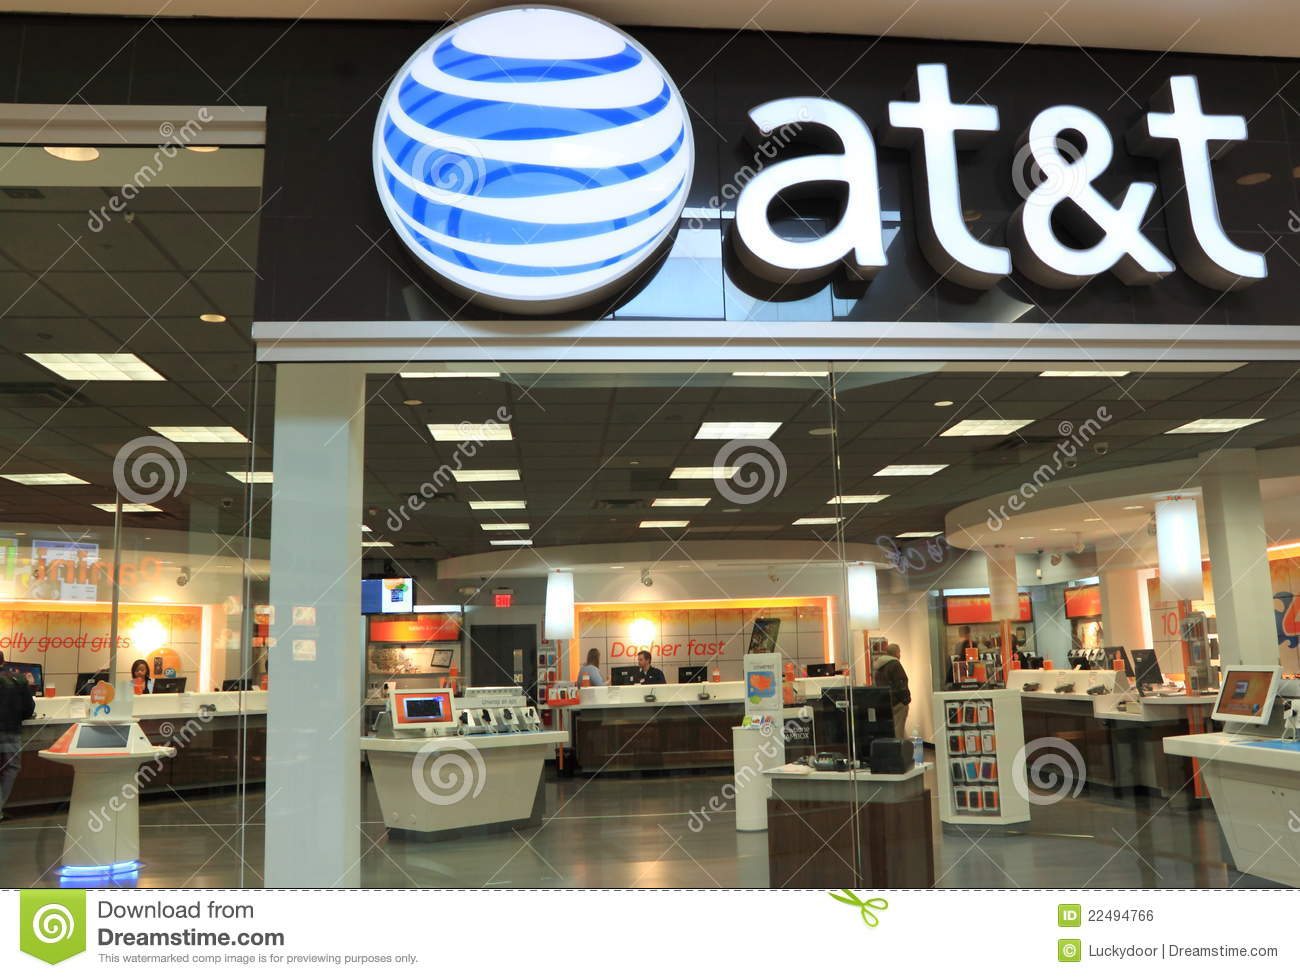 AT&T Phones. AT&T's eye for innovation has guided them through numerous phone line expansion projects. At the top of their accomplishments is the integration of the technologically advanced AT&T DECT phones.